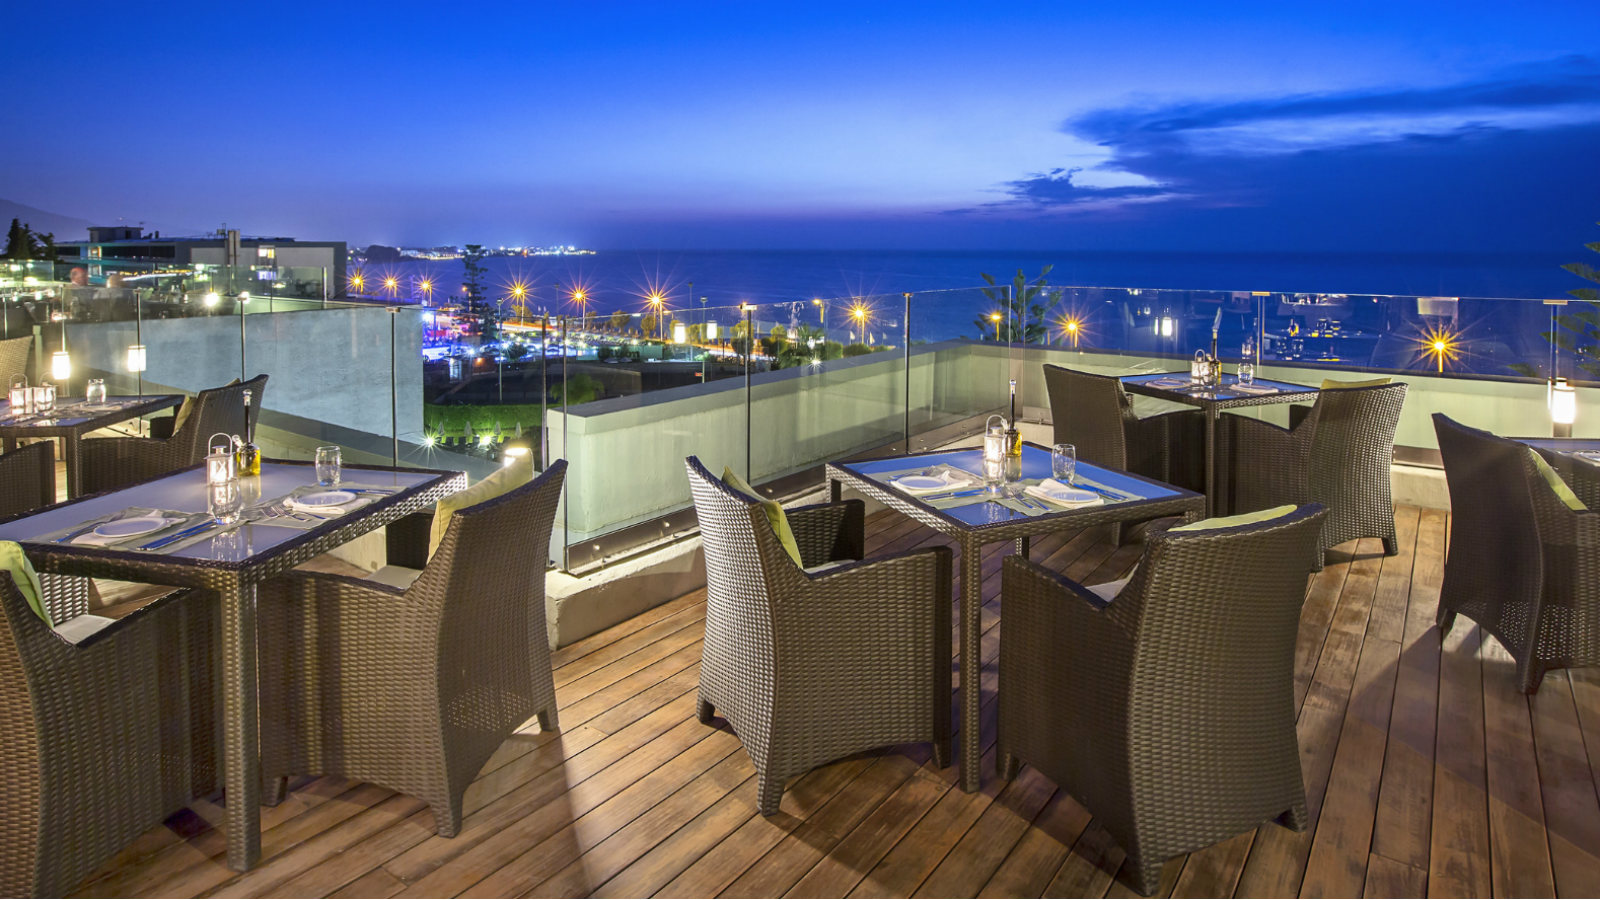 L'Onda Restaurant featuring Italian cuisine with amazing views to the sea at the Sheraton Rhodes Resort.